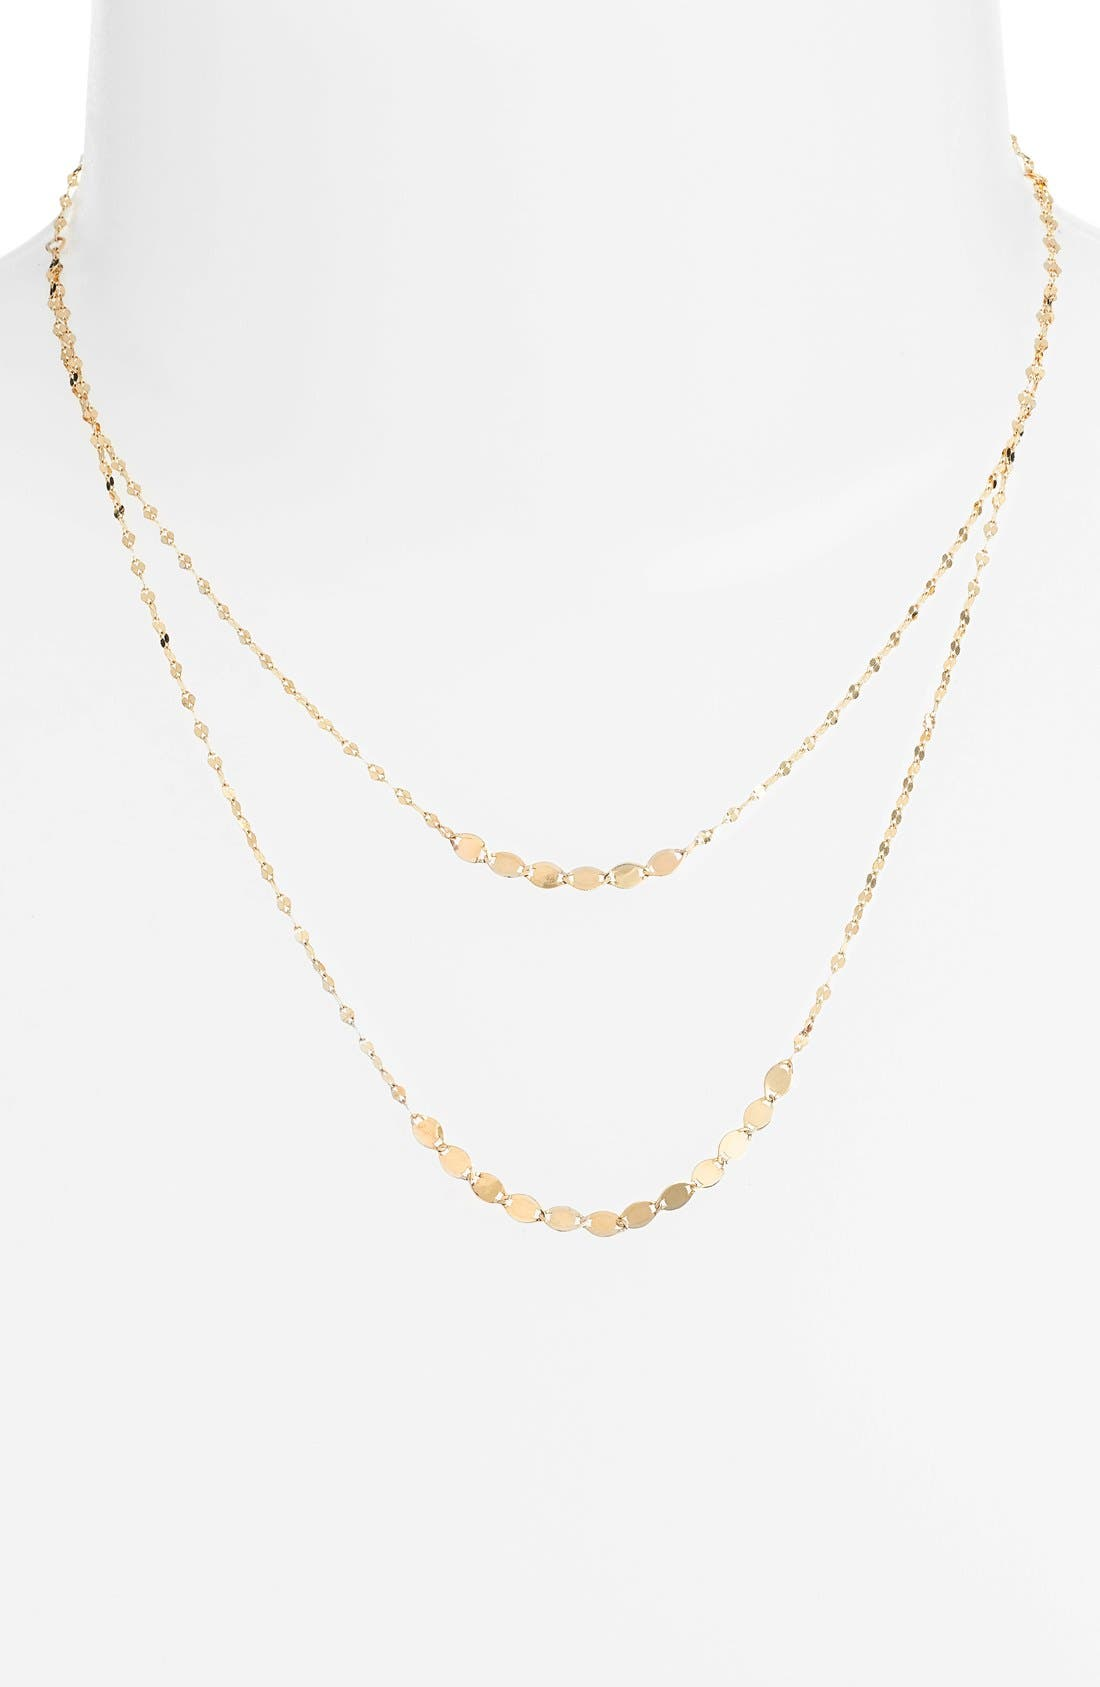 'Nude Duo' Multistrand Necklace,                             Main thumbnail 1, color,                             710